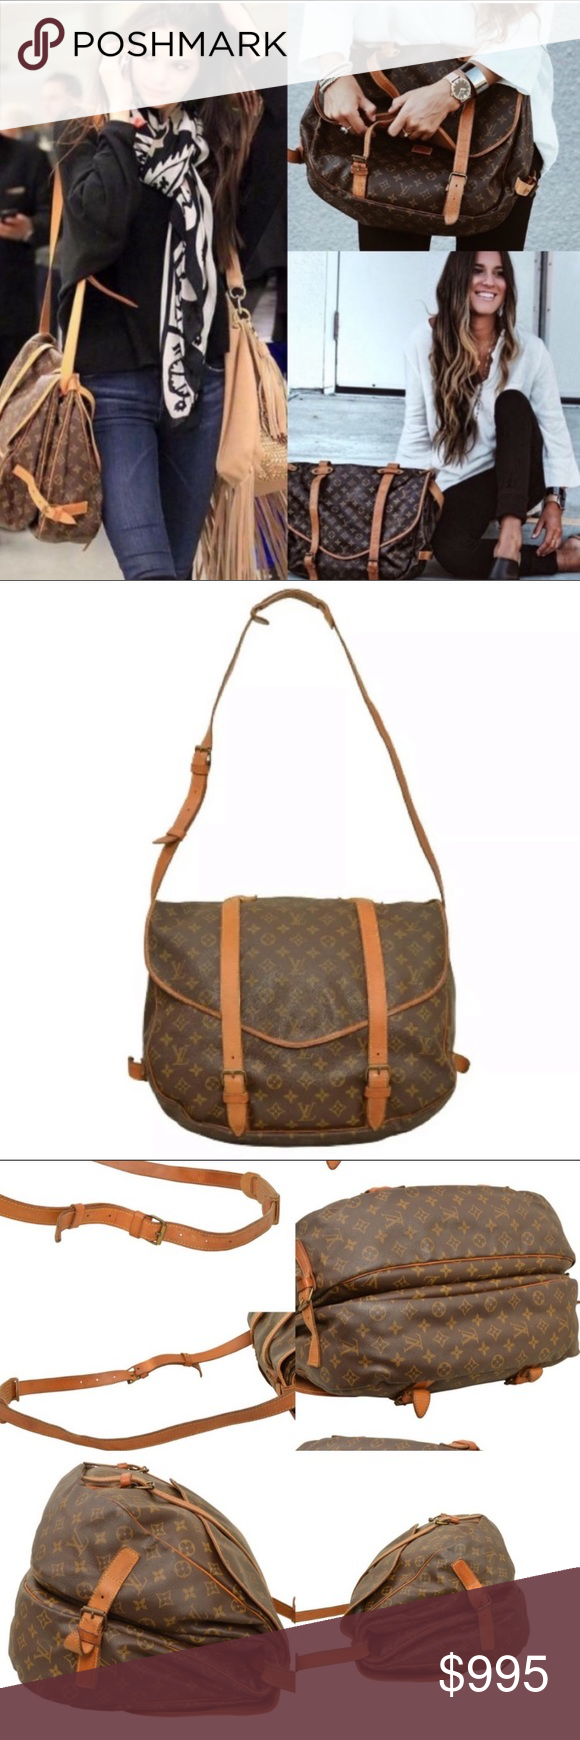 1e911e92b157 Spotted while shopping on Poshmark  Iconic Louis Vuitton Crossbody Shoulder  Bag!  poshmark